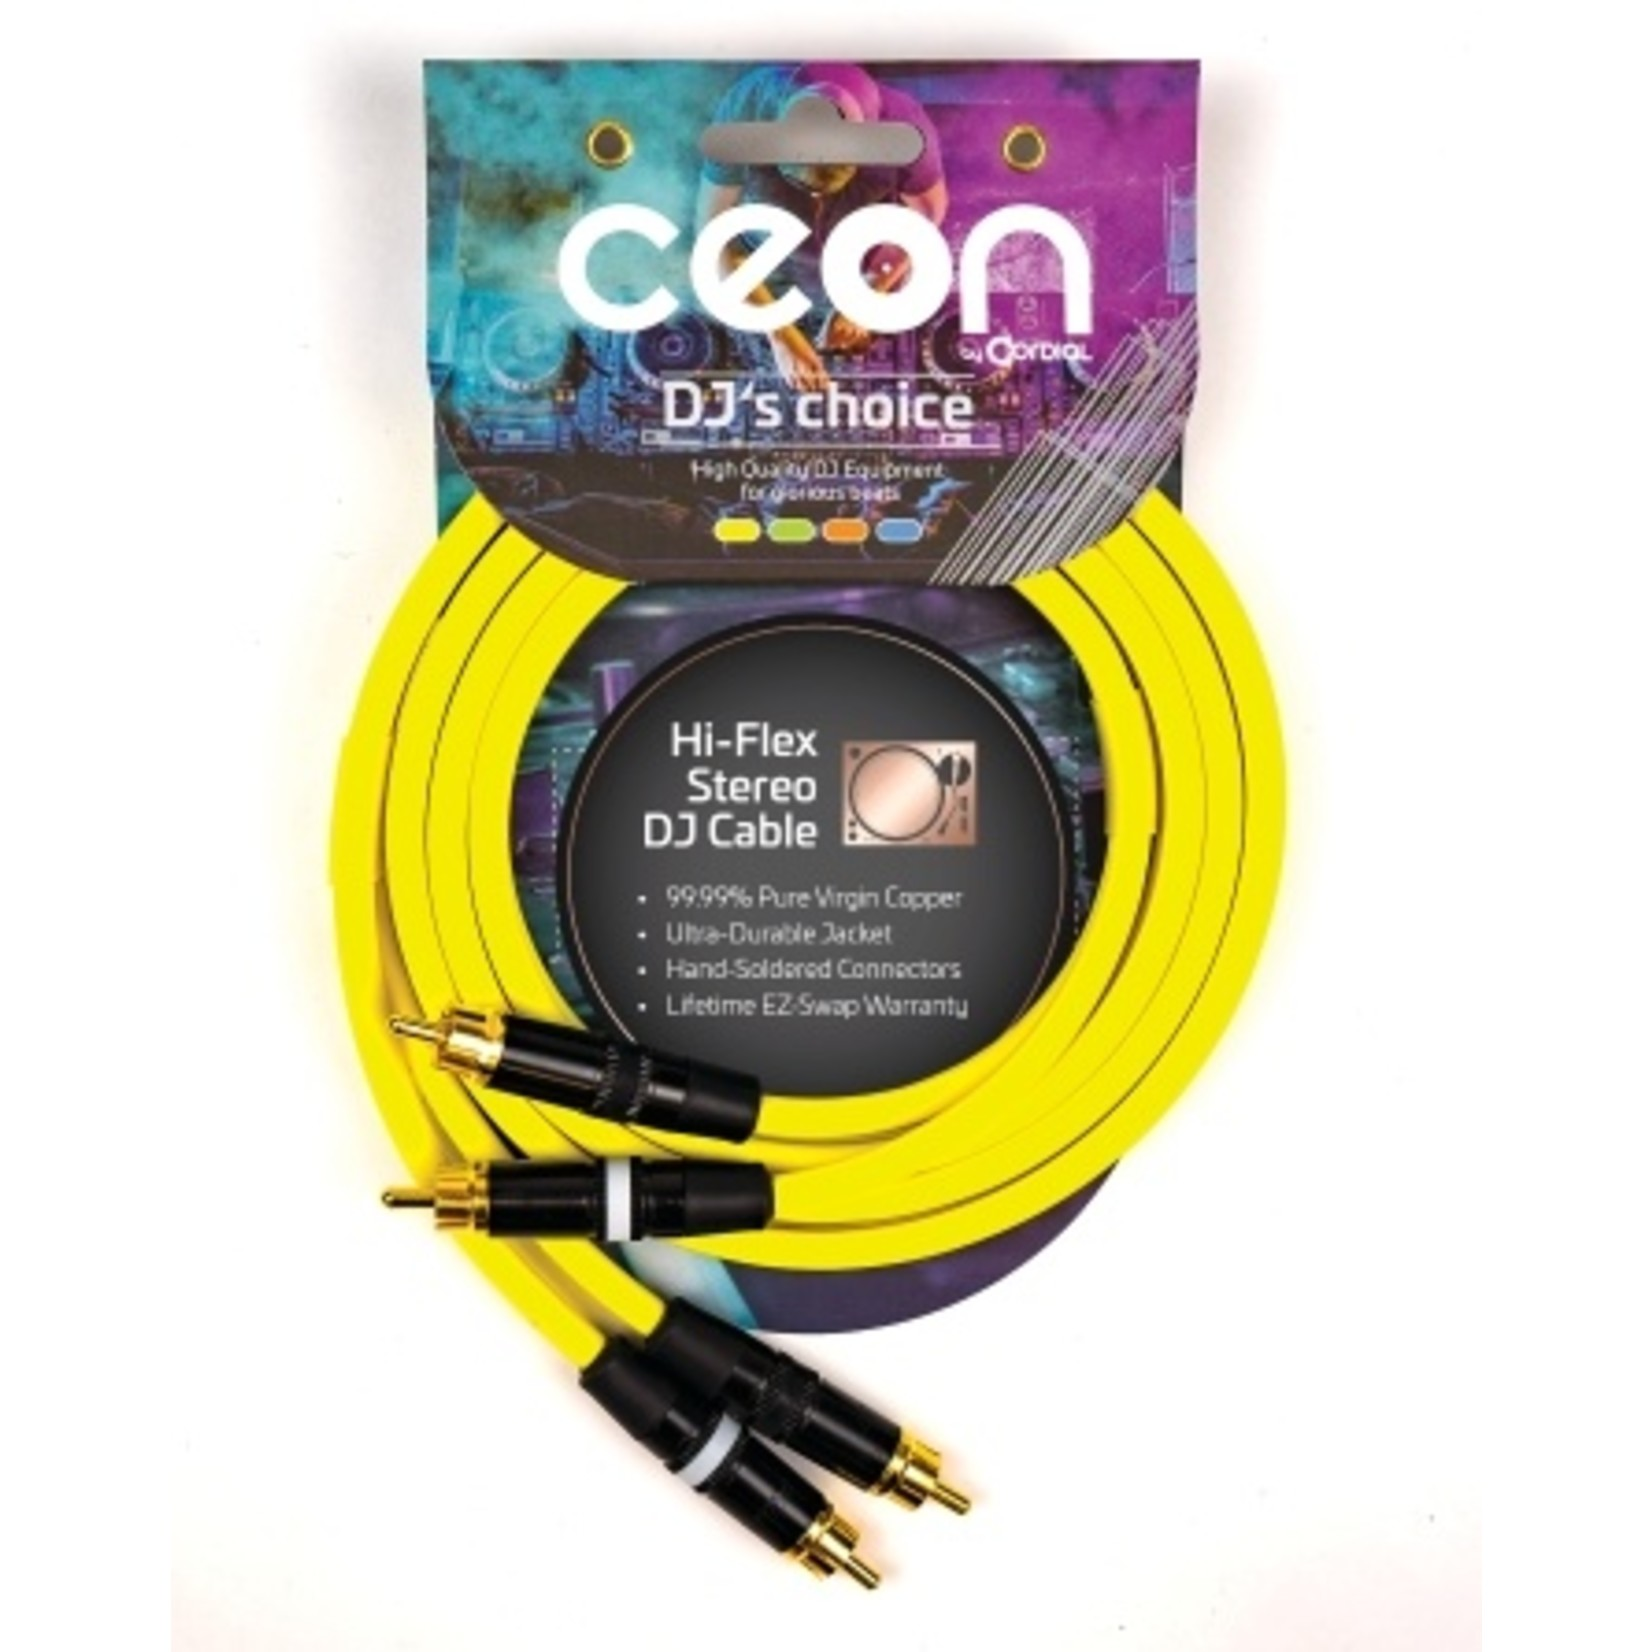 Cordial Cables Cordial Cables Premium DJ Dual/Mono (Black Light) Cable, Ceon Series - Hi-Flex DJ's Choice Stereo RCA to RCA 10-Foot Cable: Neon Yellow